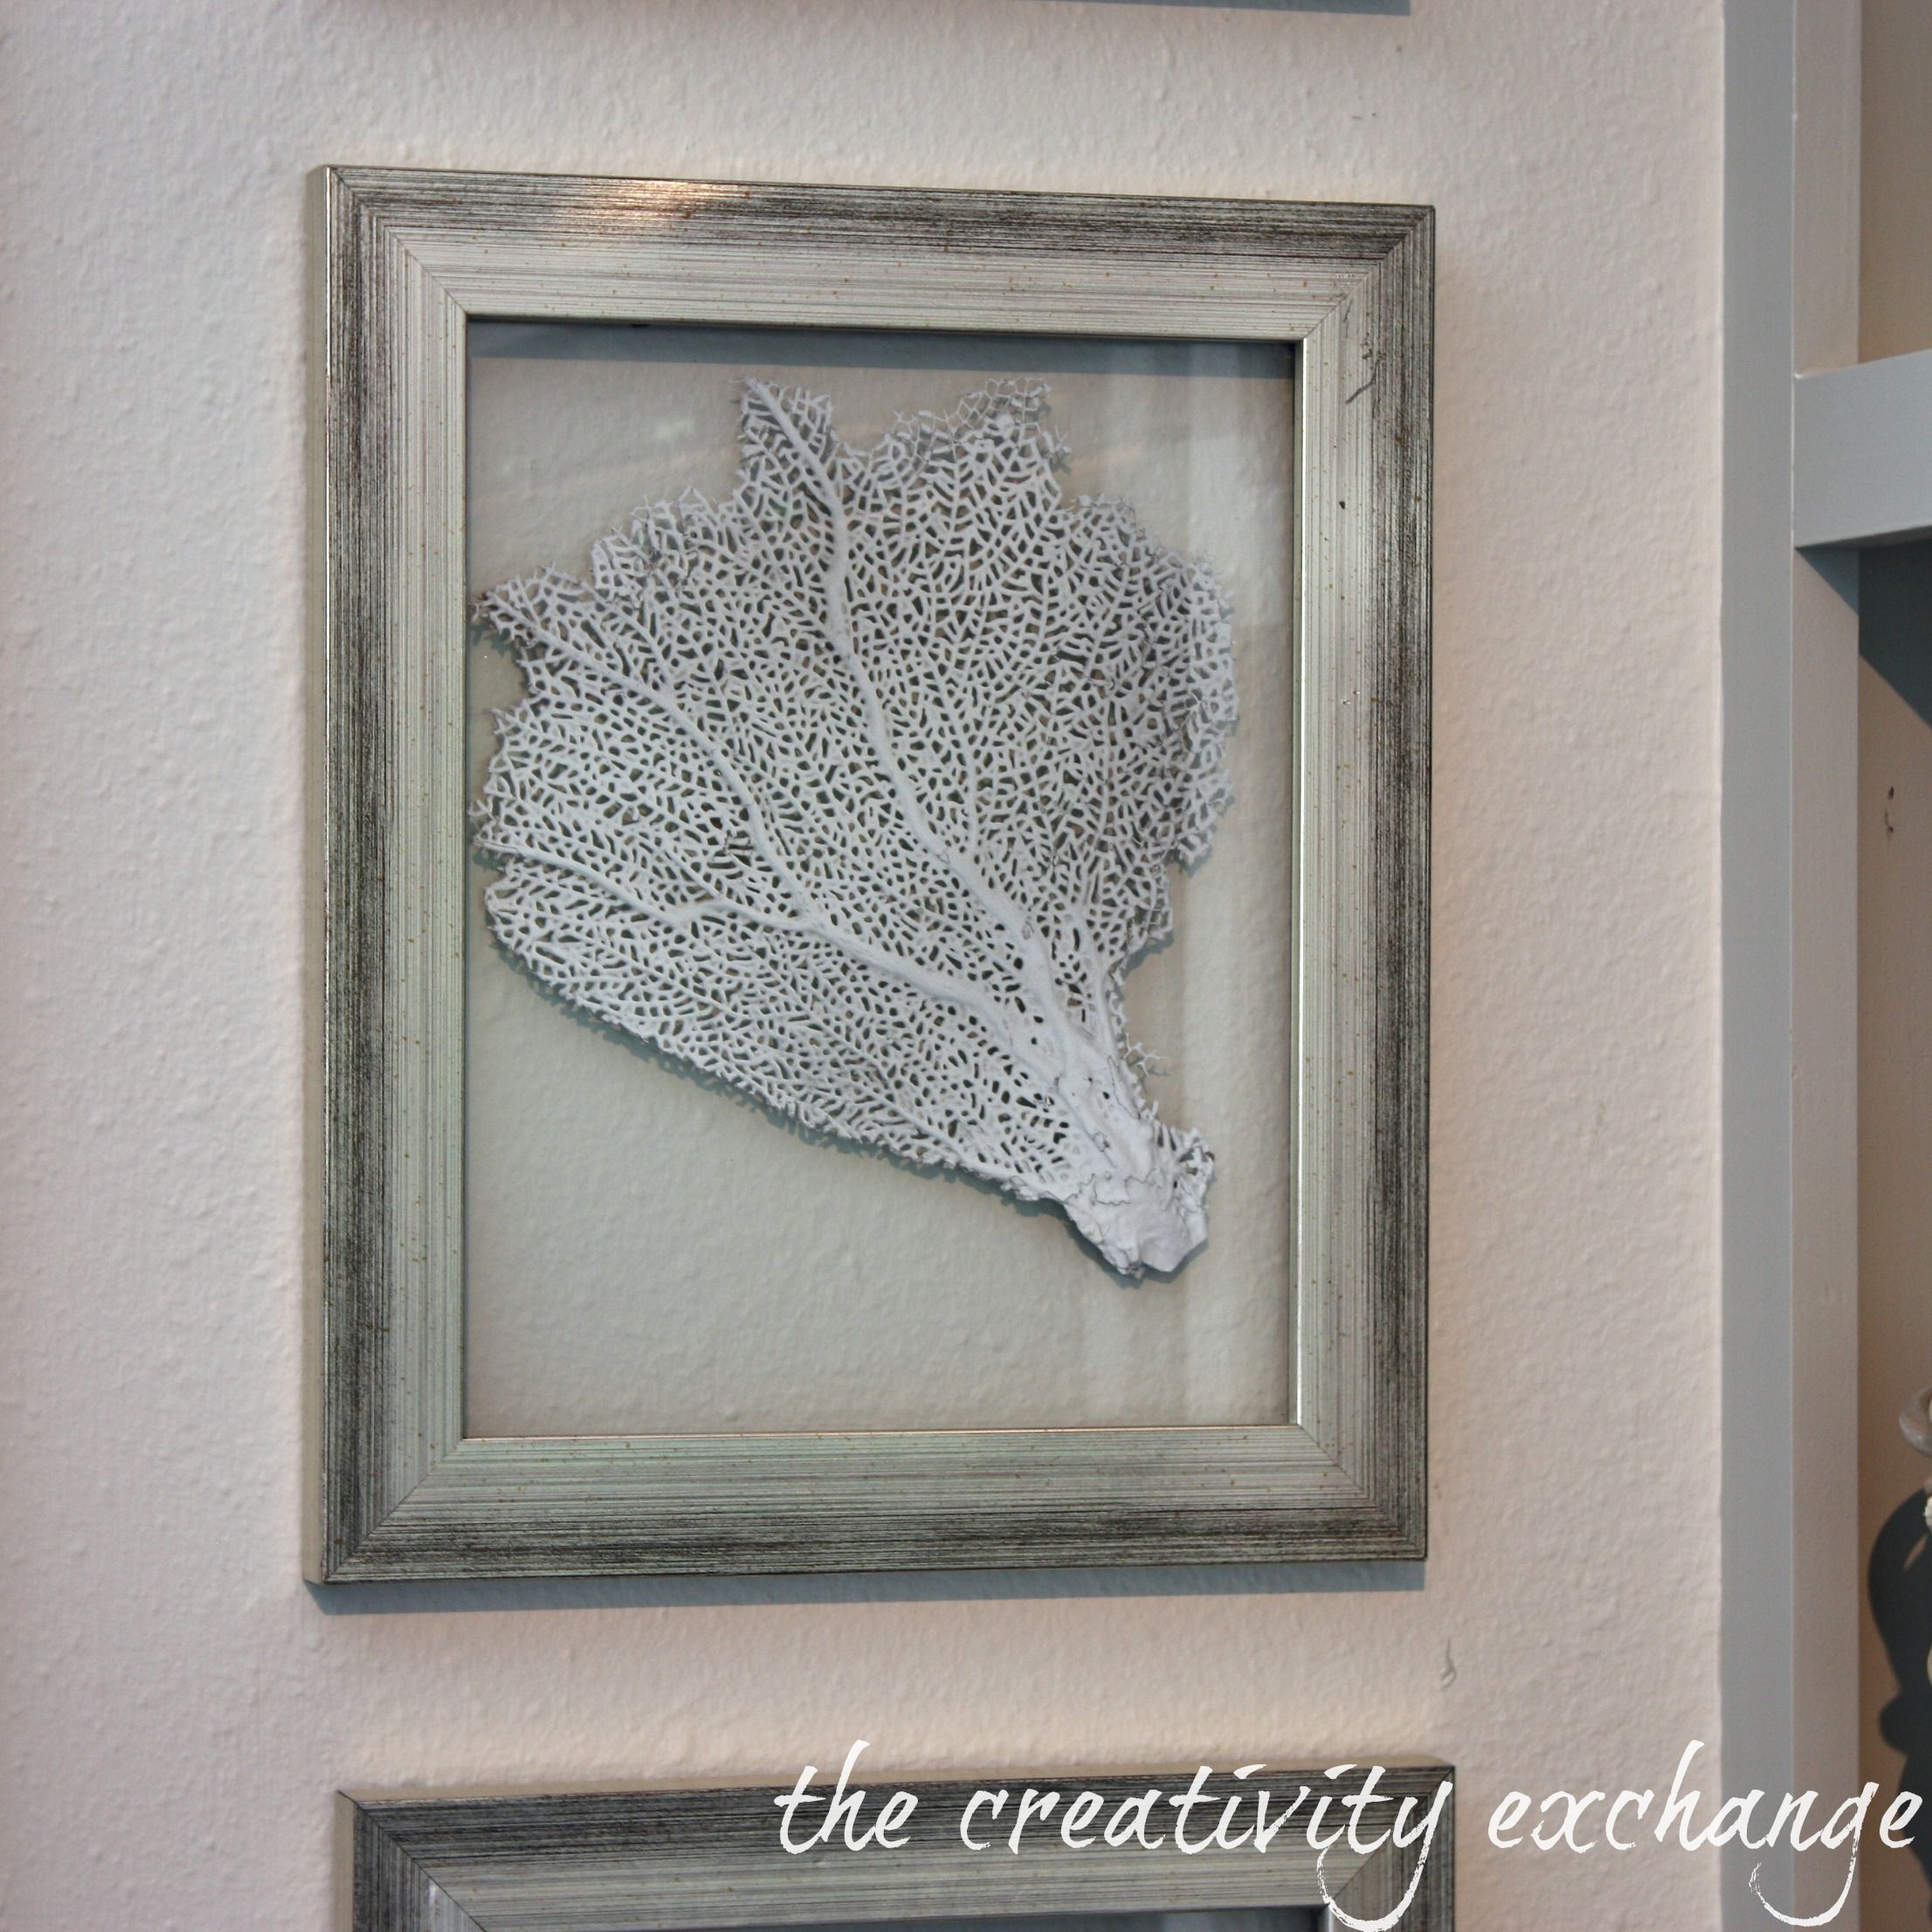 diy double sided glass frames for framing shells and sea fans the creativity exchange - Double Sided Glass Frame